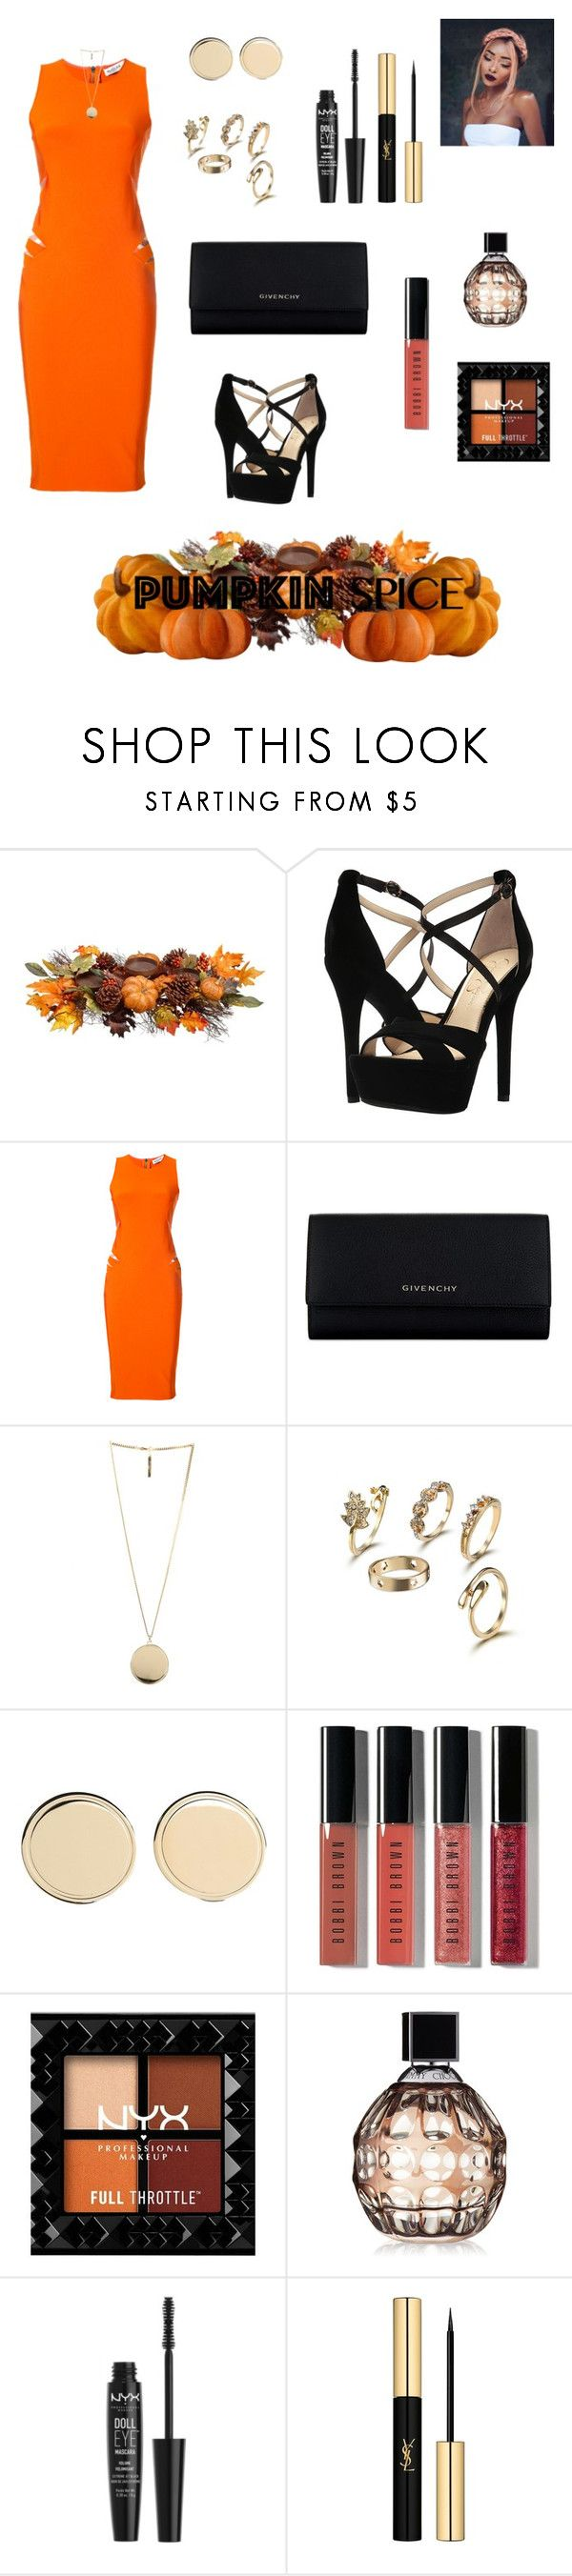 """Pumpkin Spice!"" by morganmmm ❤ liked on Polyvore featuring Allstate Floral, Jessica Simpson, Thierry Mugler, Givenchy, Bobbi Brown Cosmetics, Jimmy Choo, NYX, Yves Saint Laurent and pumpkinspice"